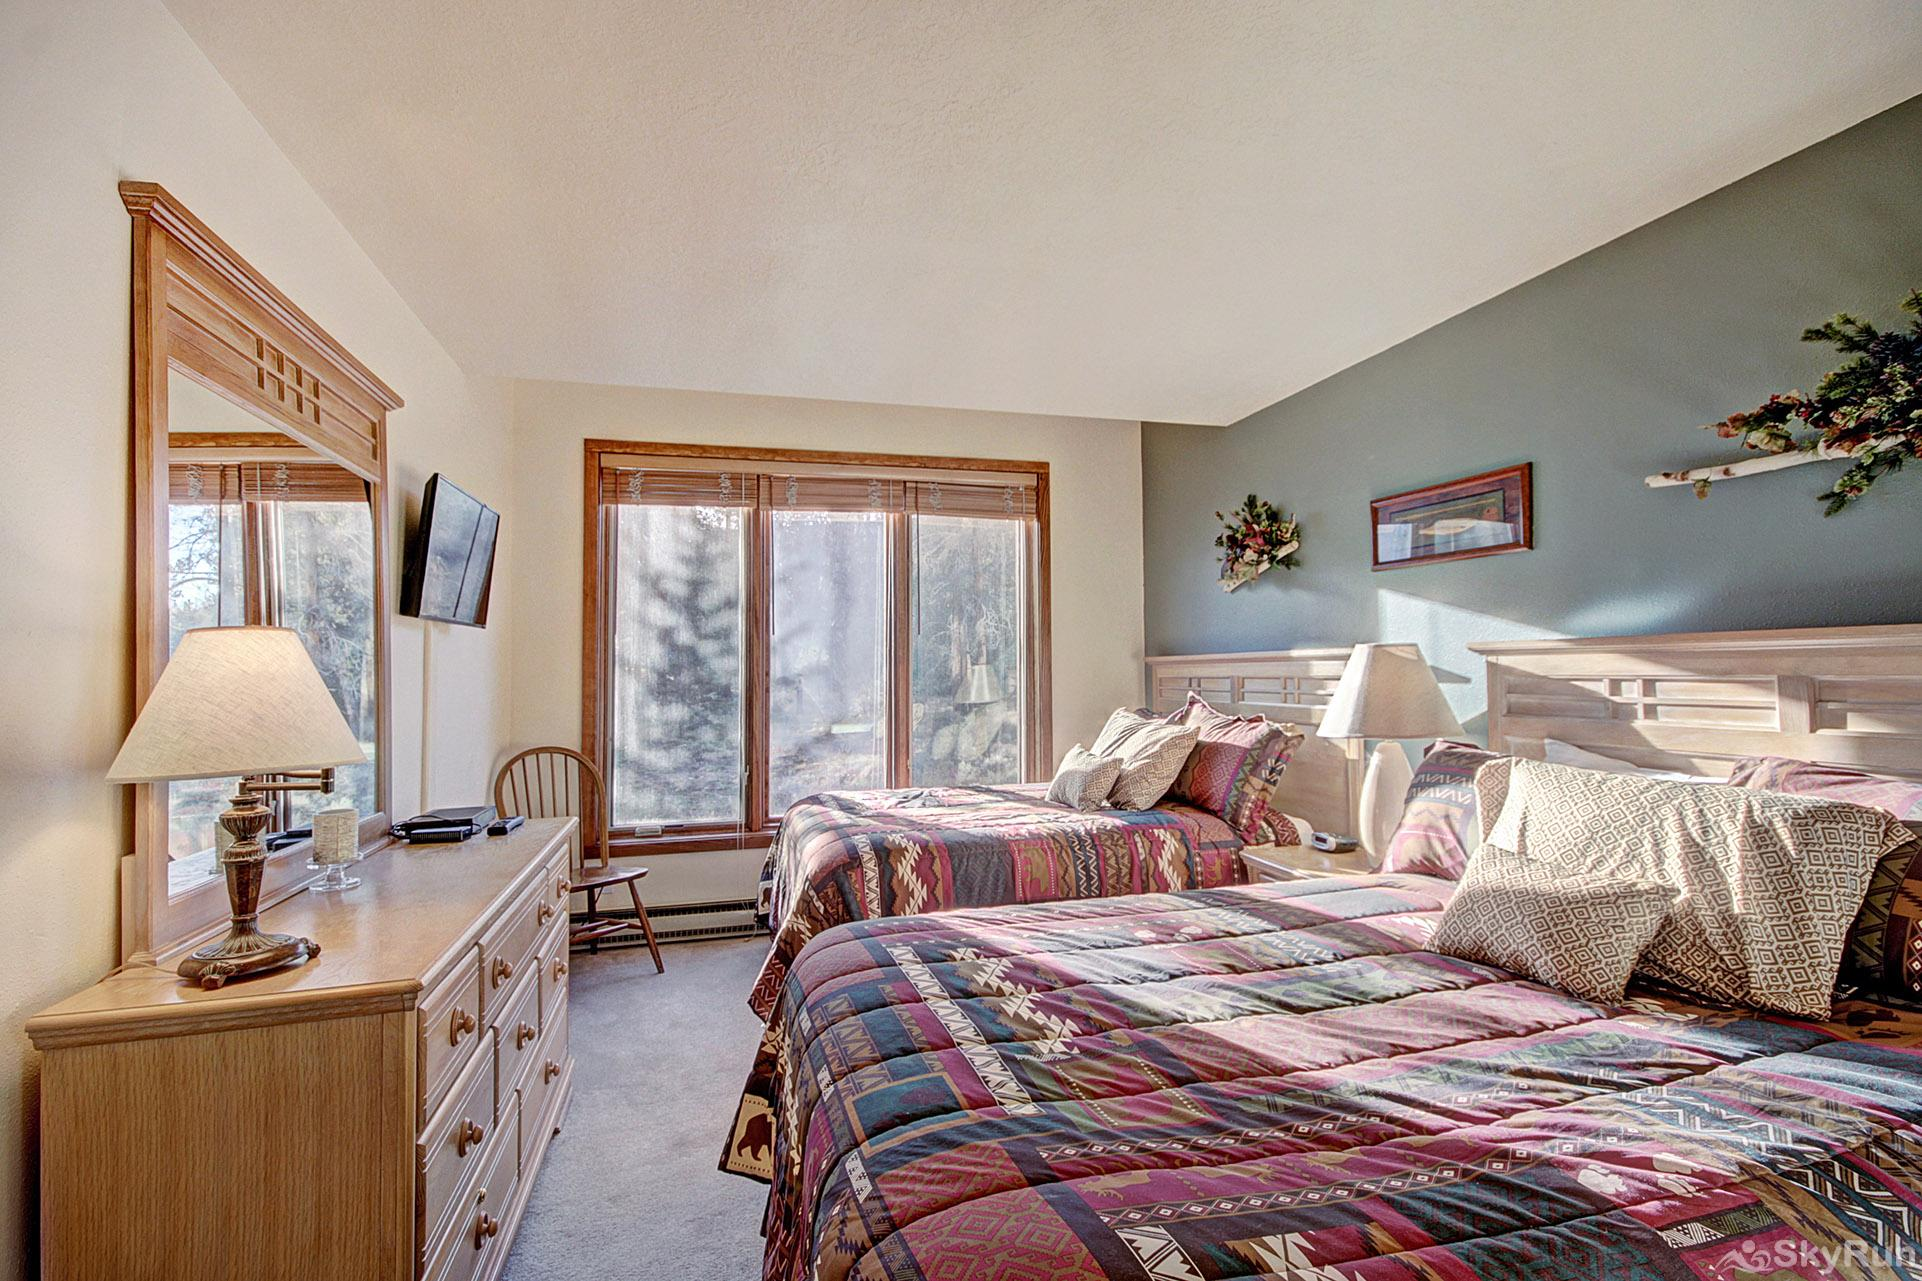 2019 Lodgepole Guest Bedroom